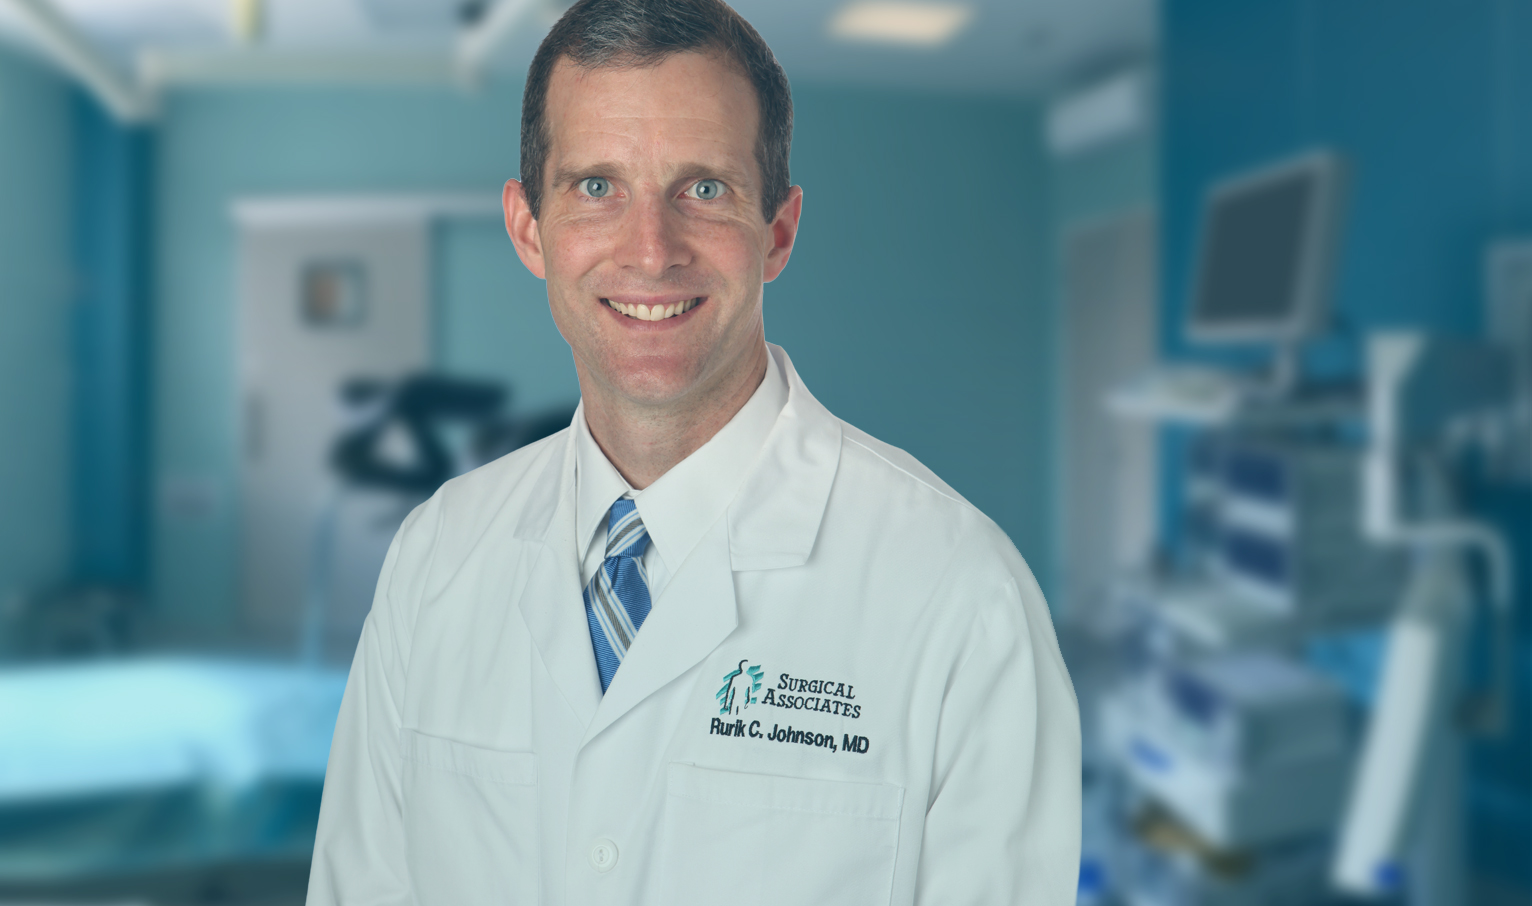 Rurik C. Johnson, MD, FACS